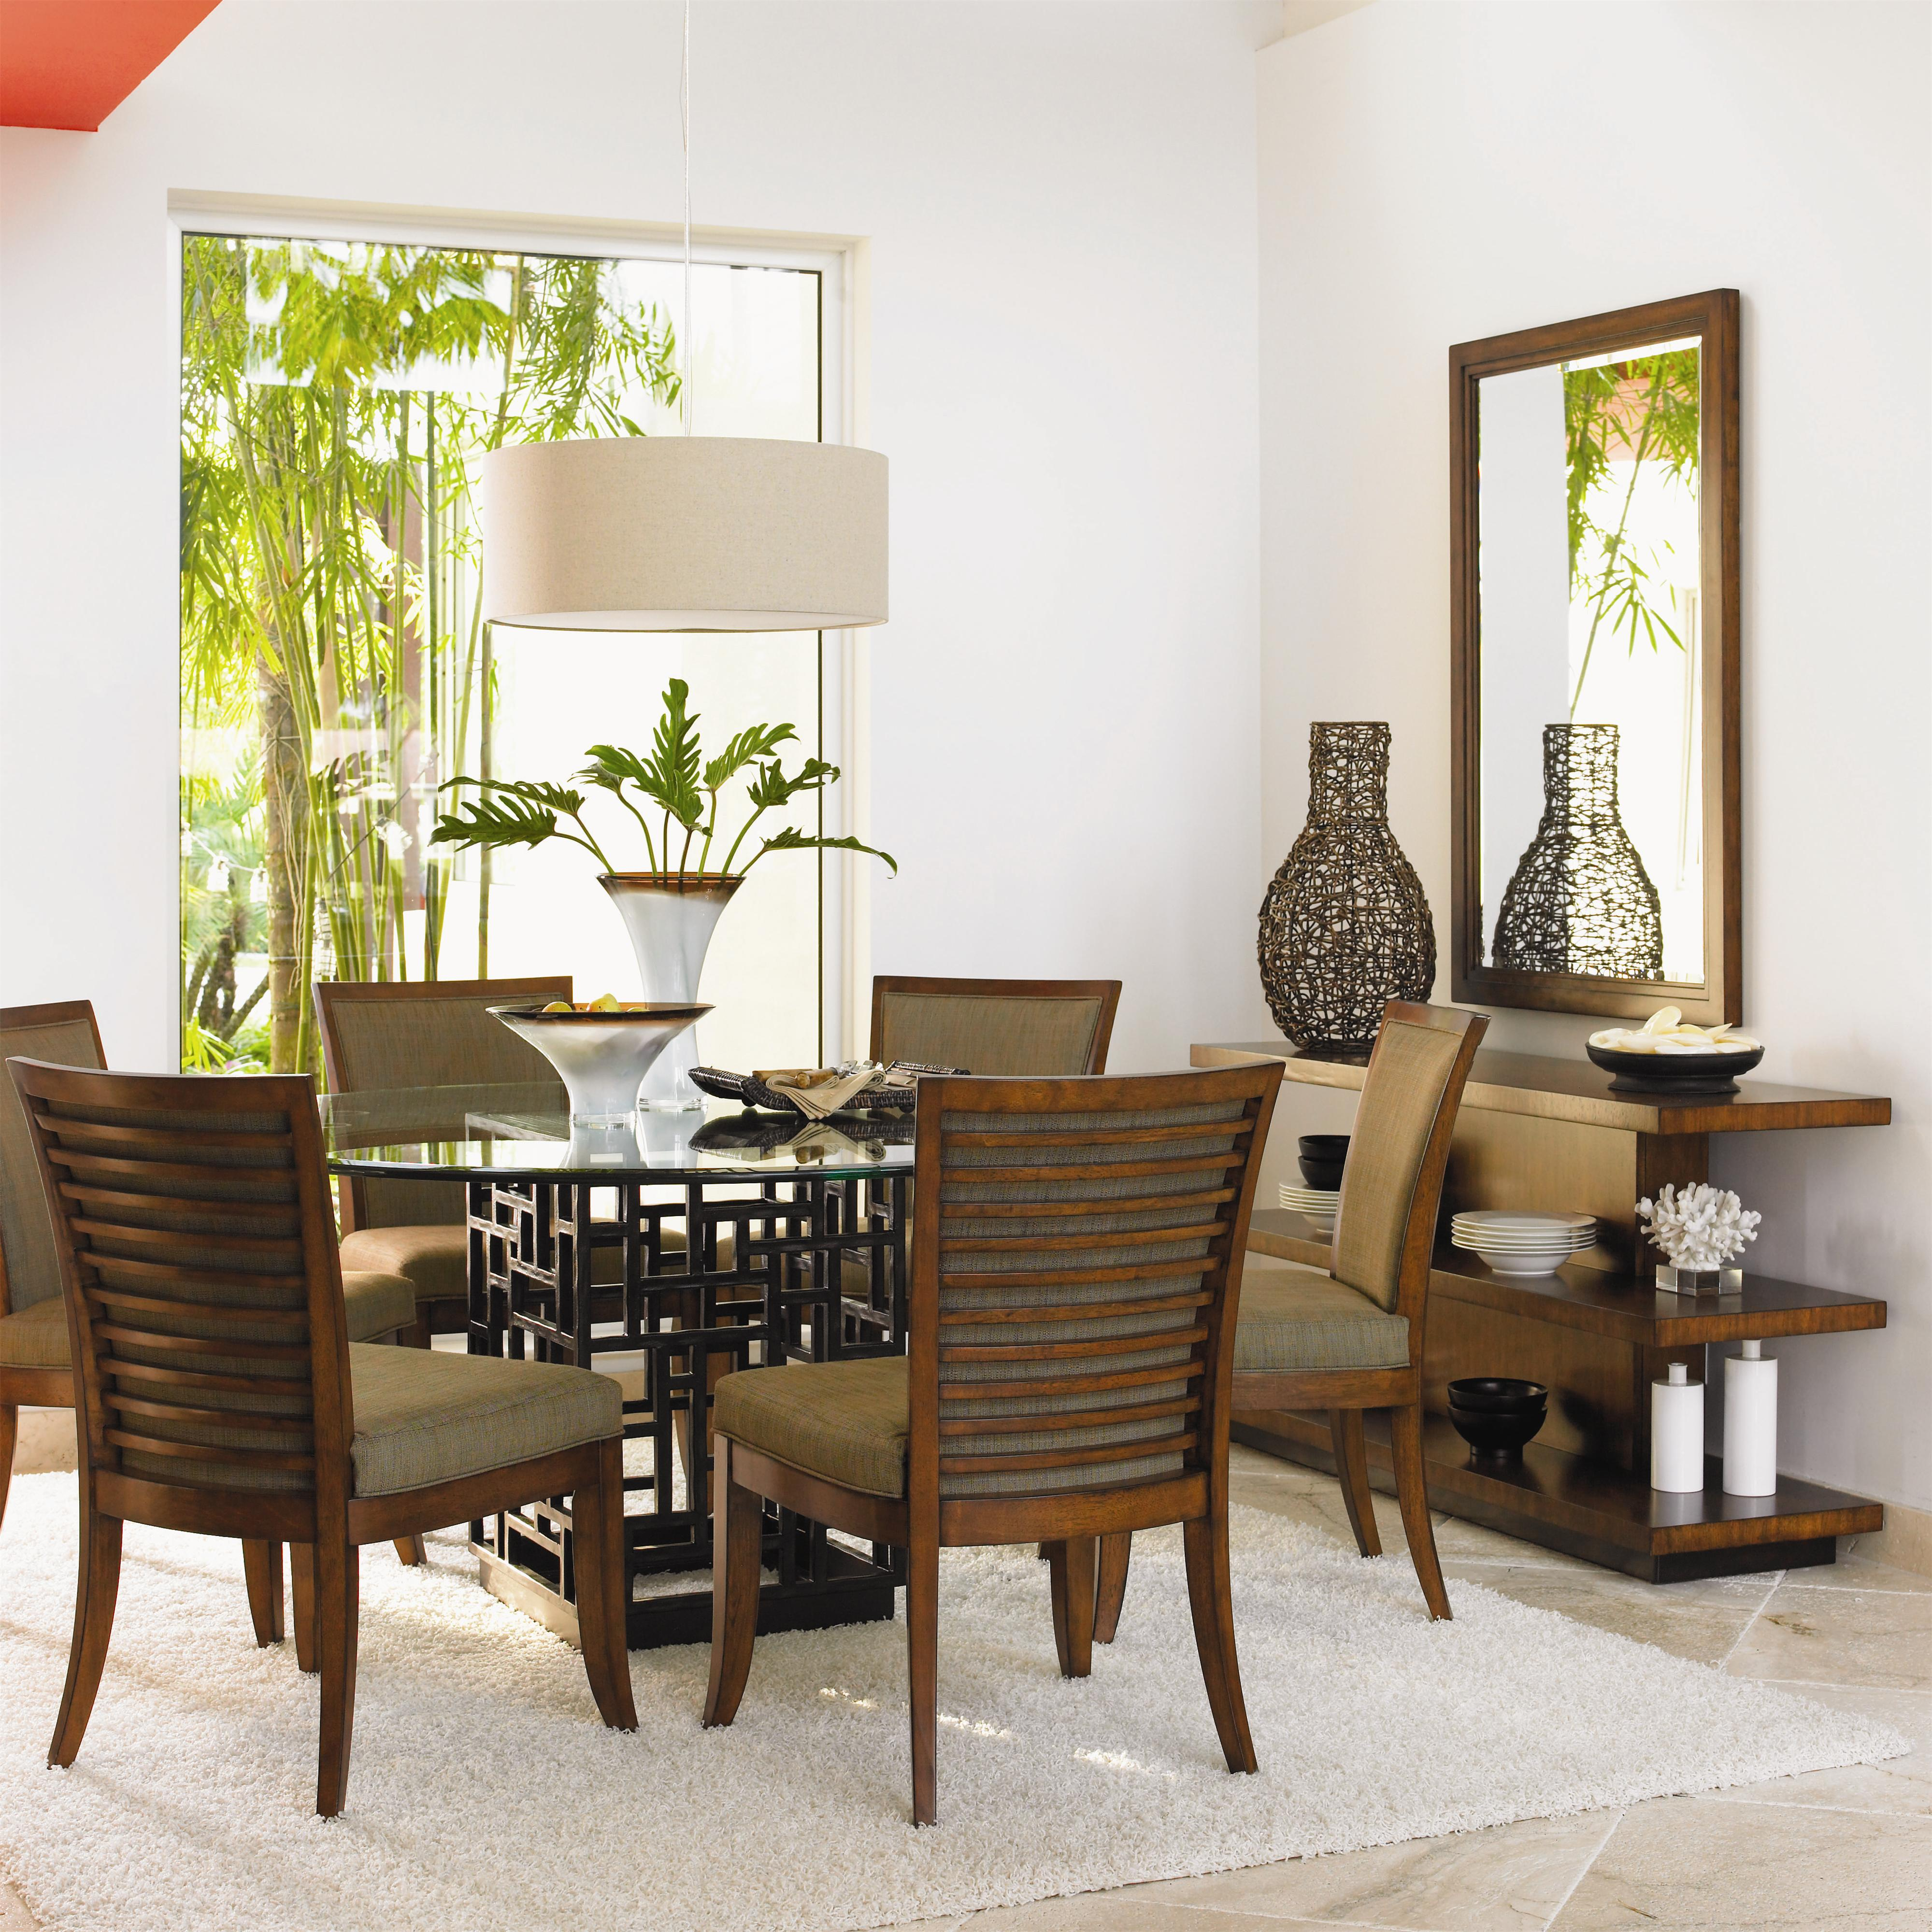 Ocean Club 7 Piece Table & Chair Set by Tommy Bahama Home at Baer's Furniture